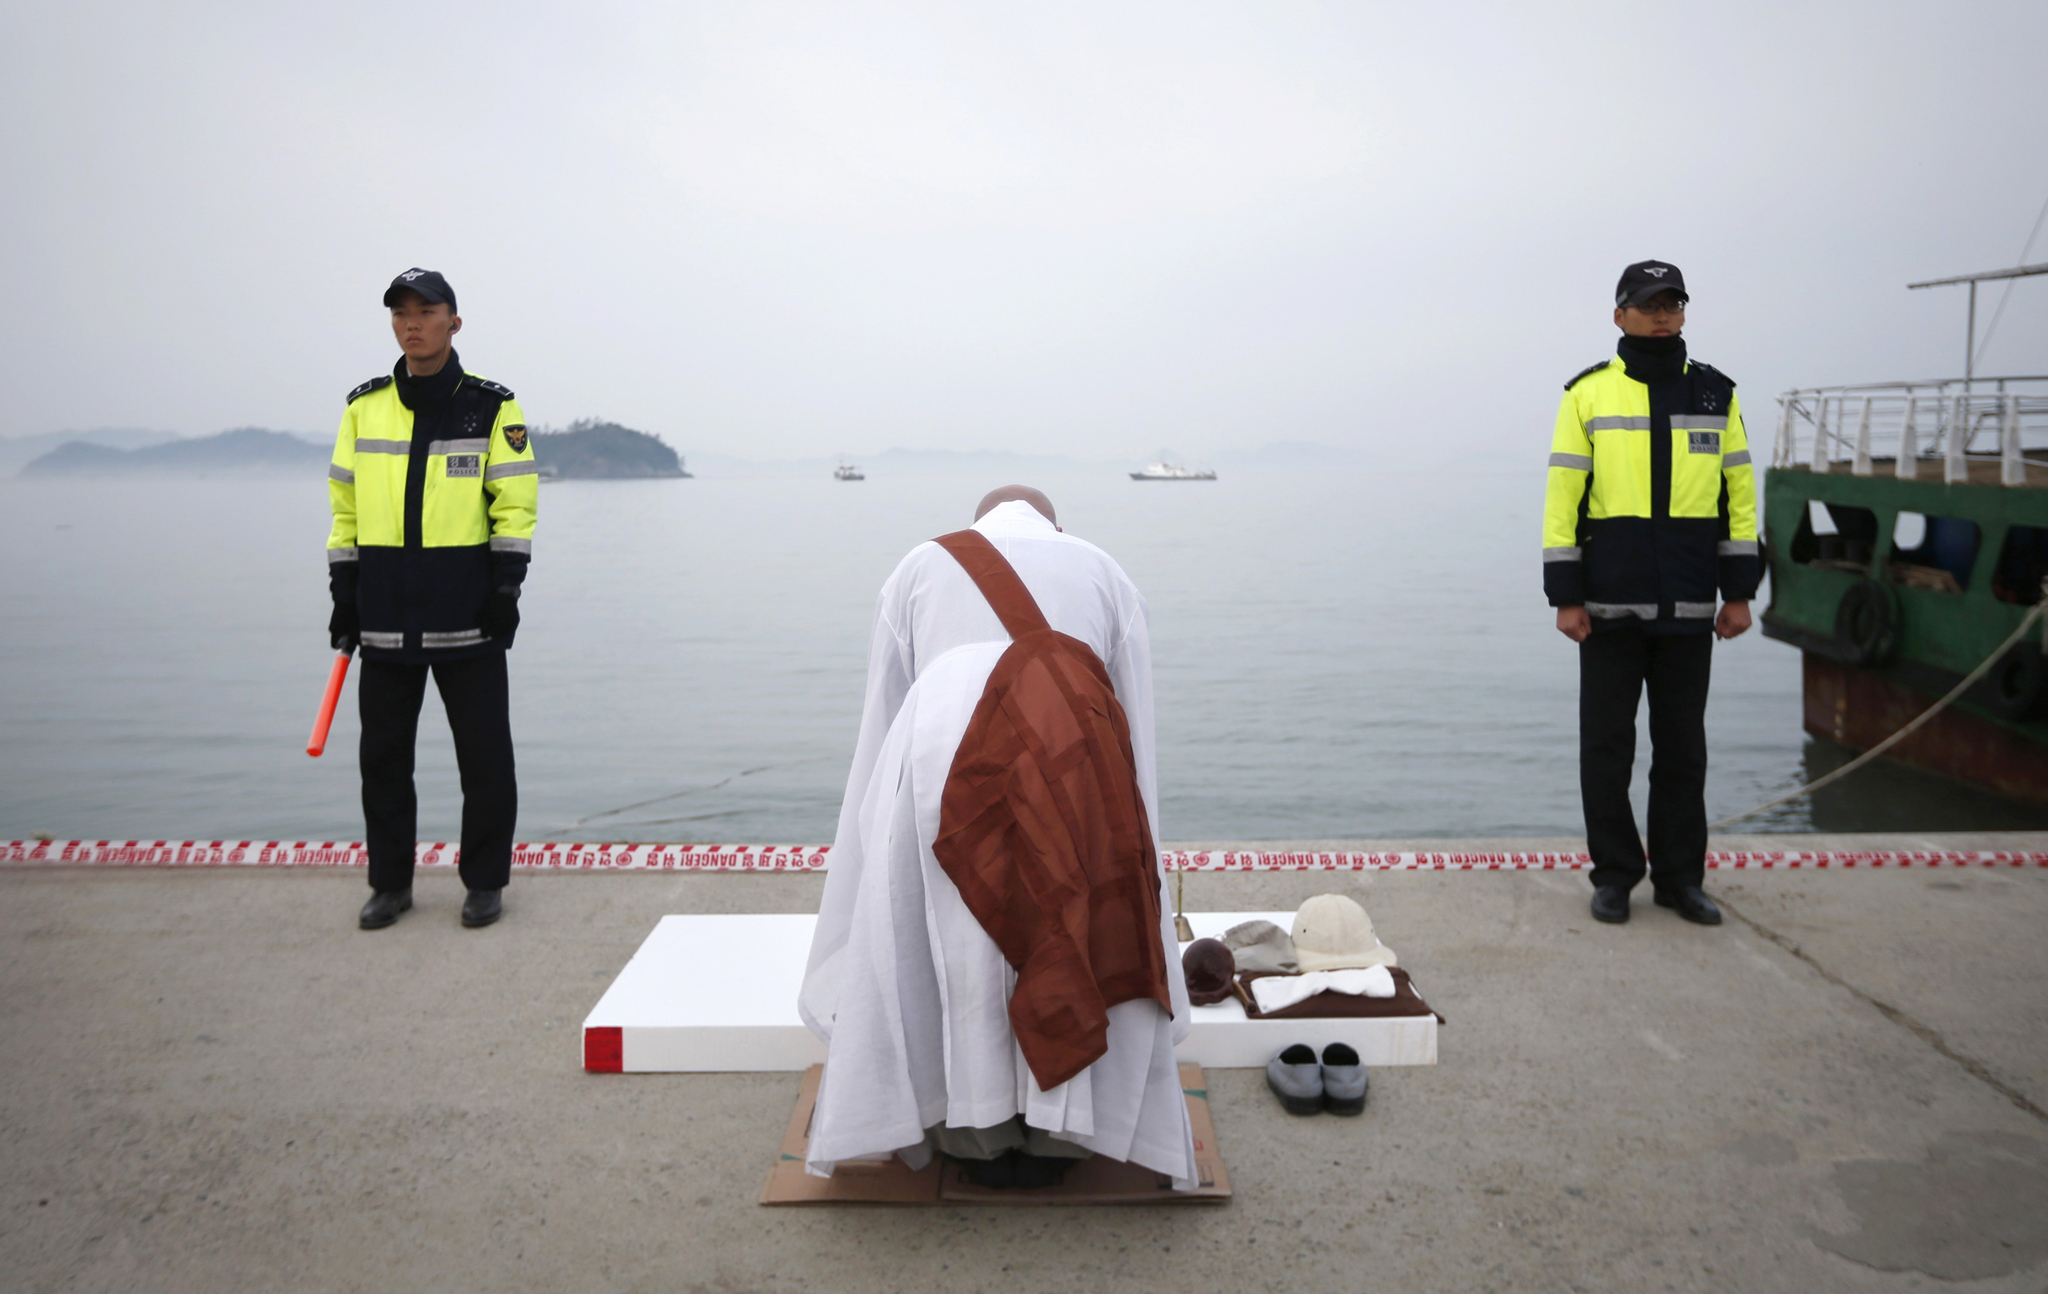 Two policemen stand guard as a priest says prayers at the port in Jindo, where family members are waiting for bodies recovered from the capsized passenger ship Sewol April 22, 2014. The crew of the South Korean ferry that sank with hundreds of people on board repeatedly asked officers on the bridge whether or not to give the order to abandon ship, but there was no response, a crew member has said. The Sewol ferry sank last Wednesday on a routine trip south from the port of Incheon to the sub-tropical holiday island of Jeju. REUTERS/Kim Hong-Ji